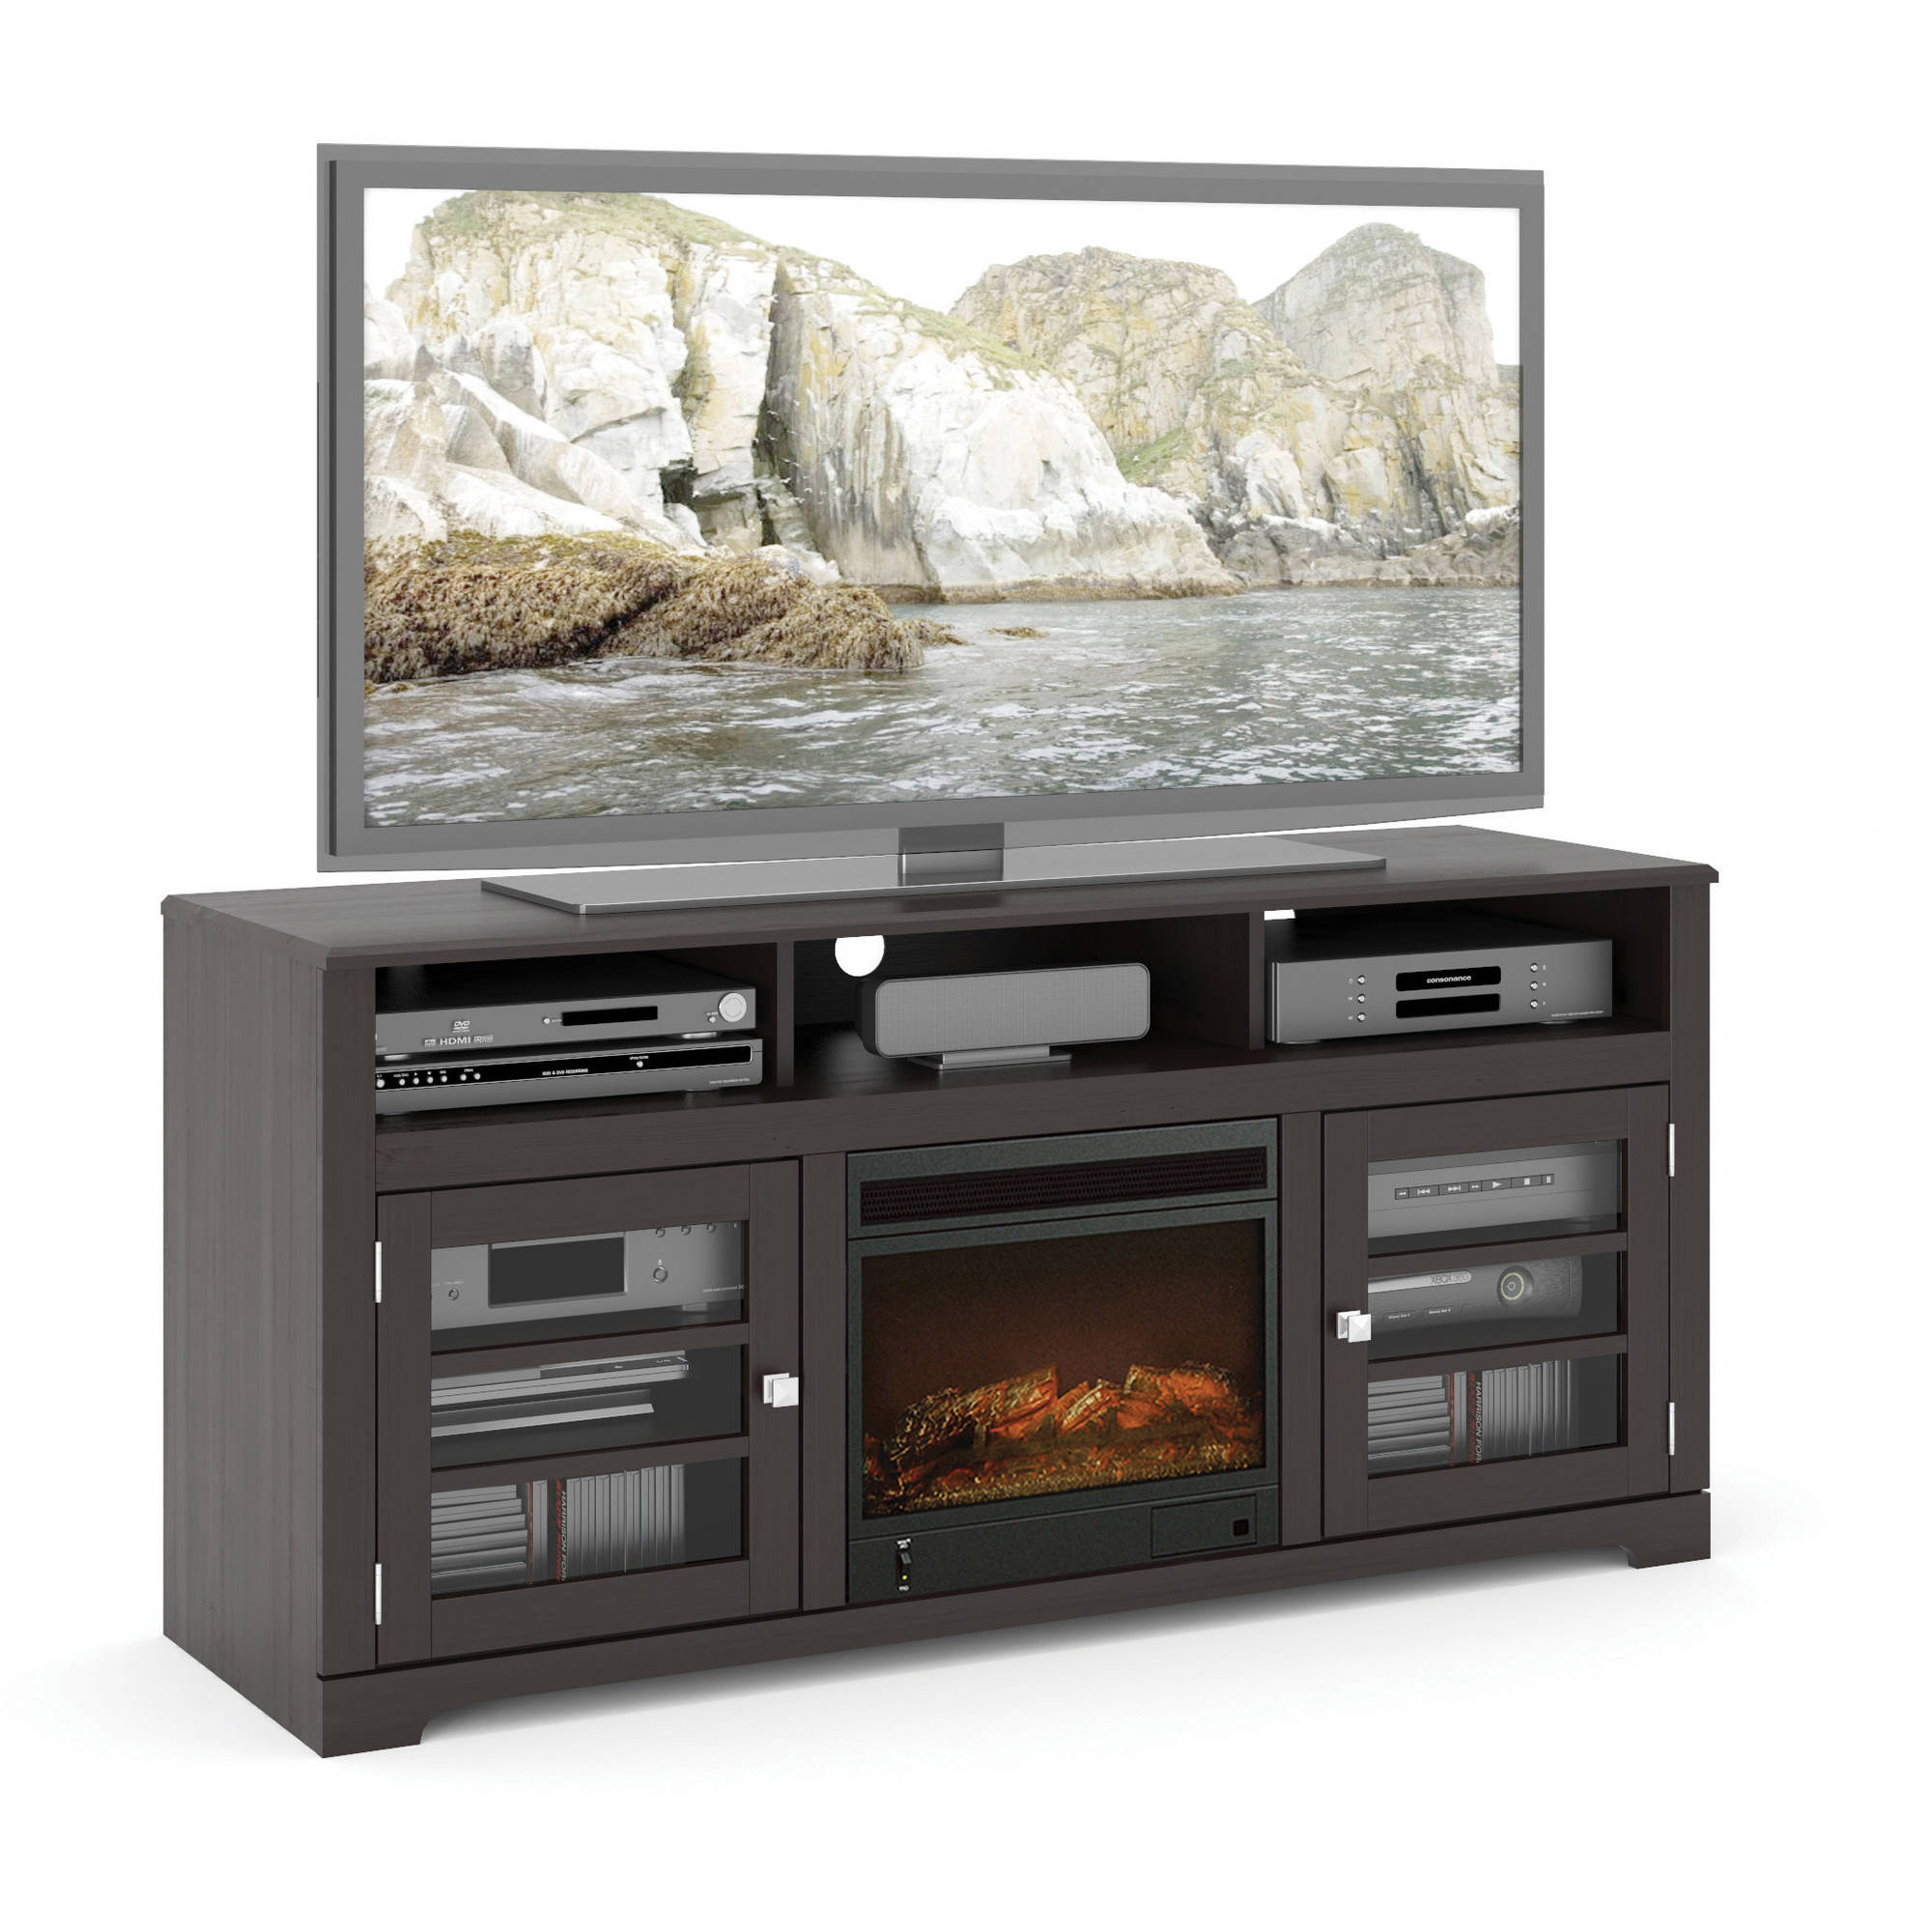 Shop for Fireplace TV Stands in TV Stands & Entertainment Centers. Buy products such as Better Homes and Gardens Crossmill Fireplace Media Console